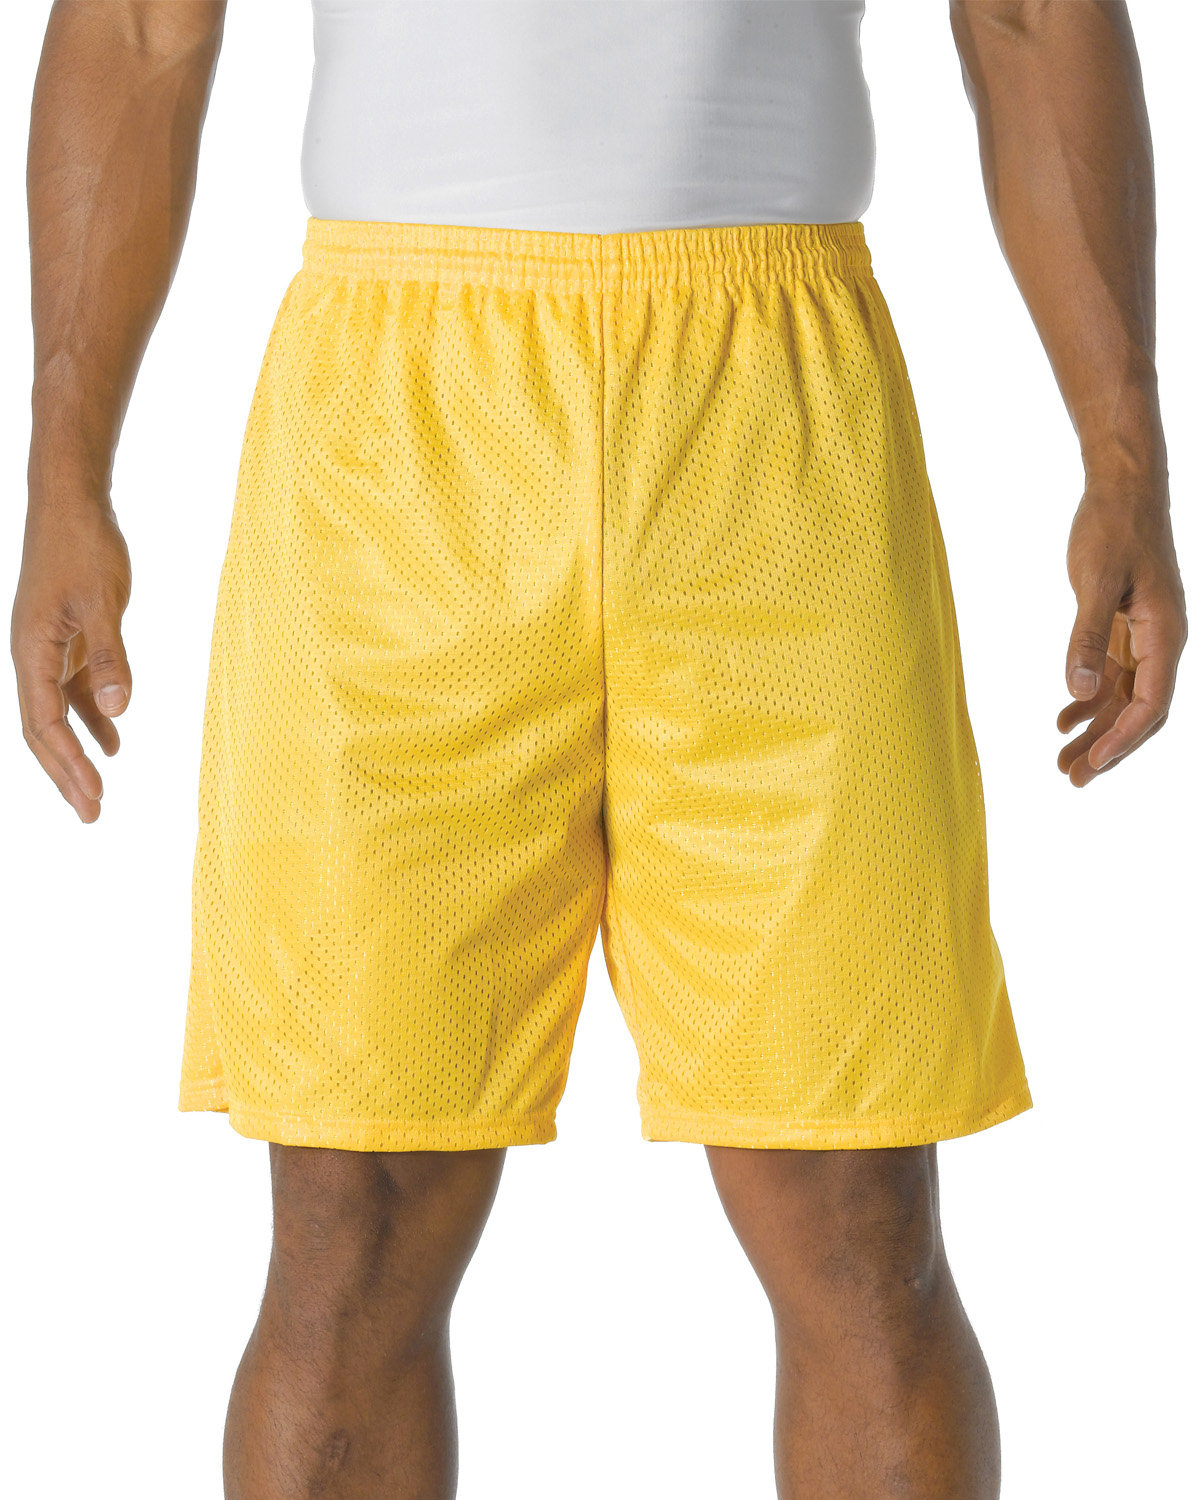 A4 Adult Tricot Mesh Short GOLD